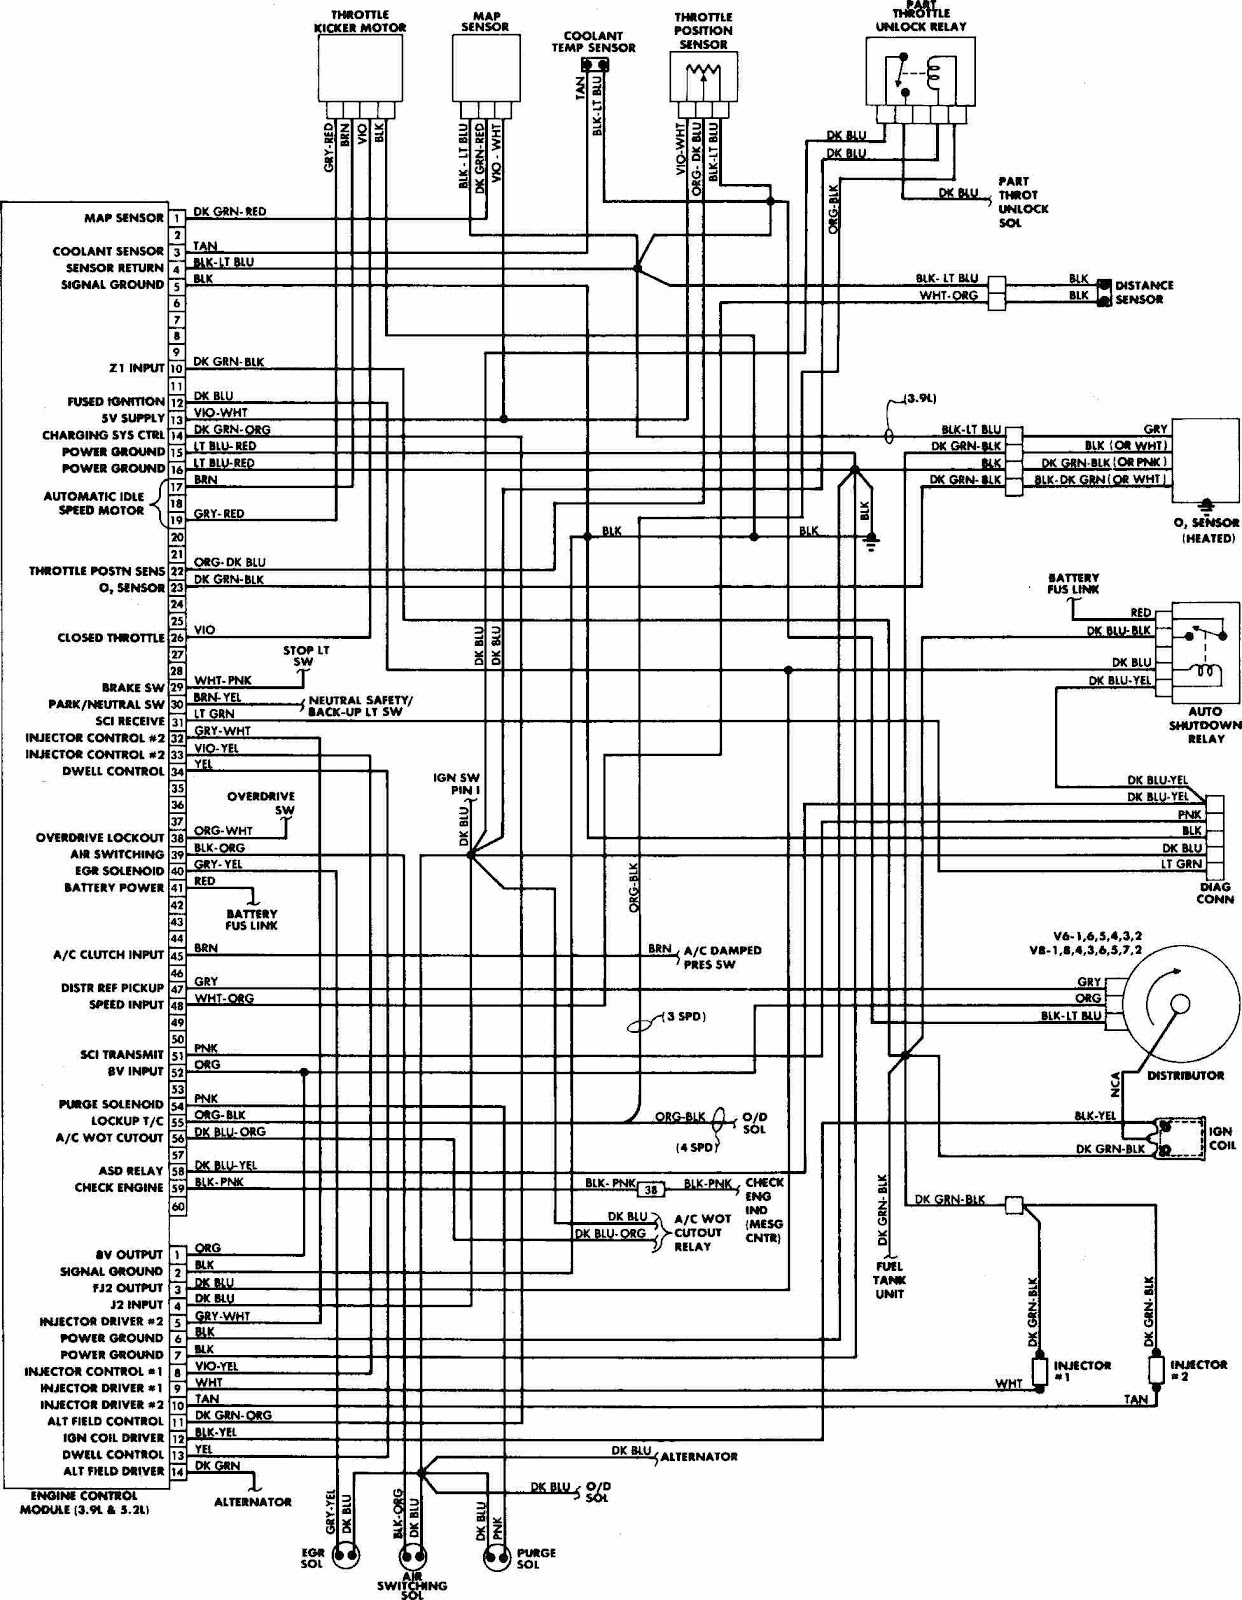 Dodge W100 1988 Engine Control Wiring Diagram All about